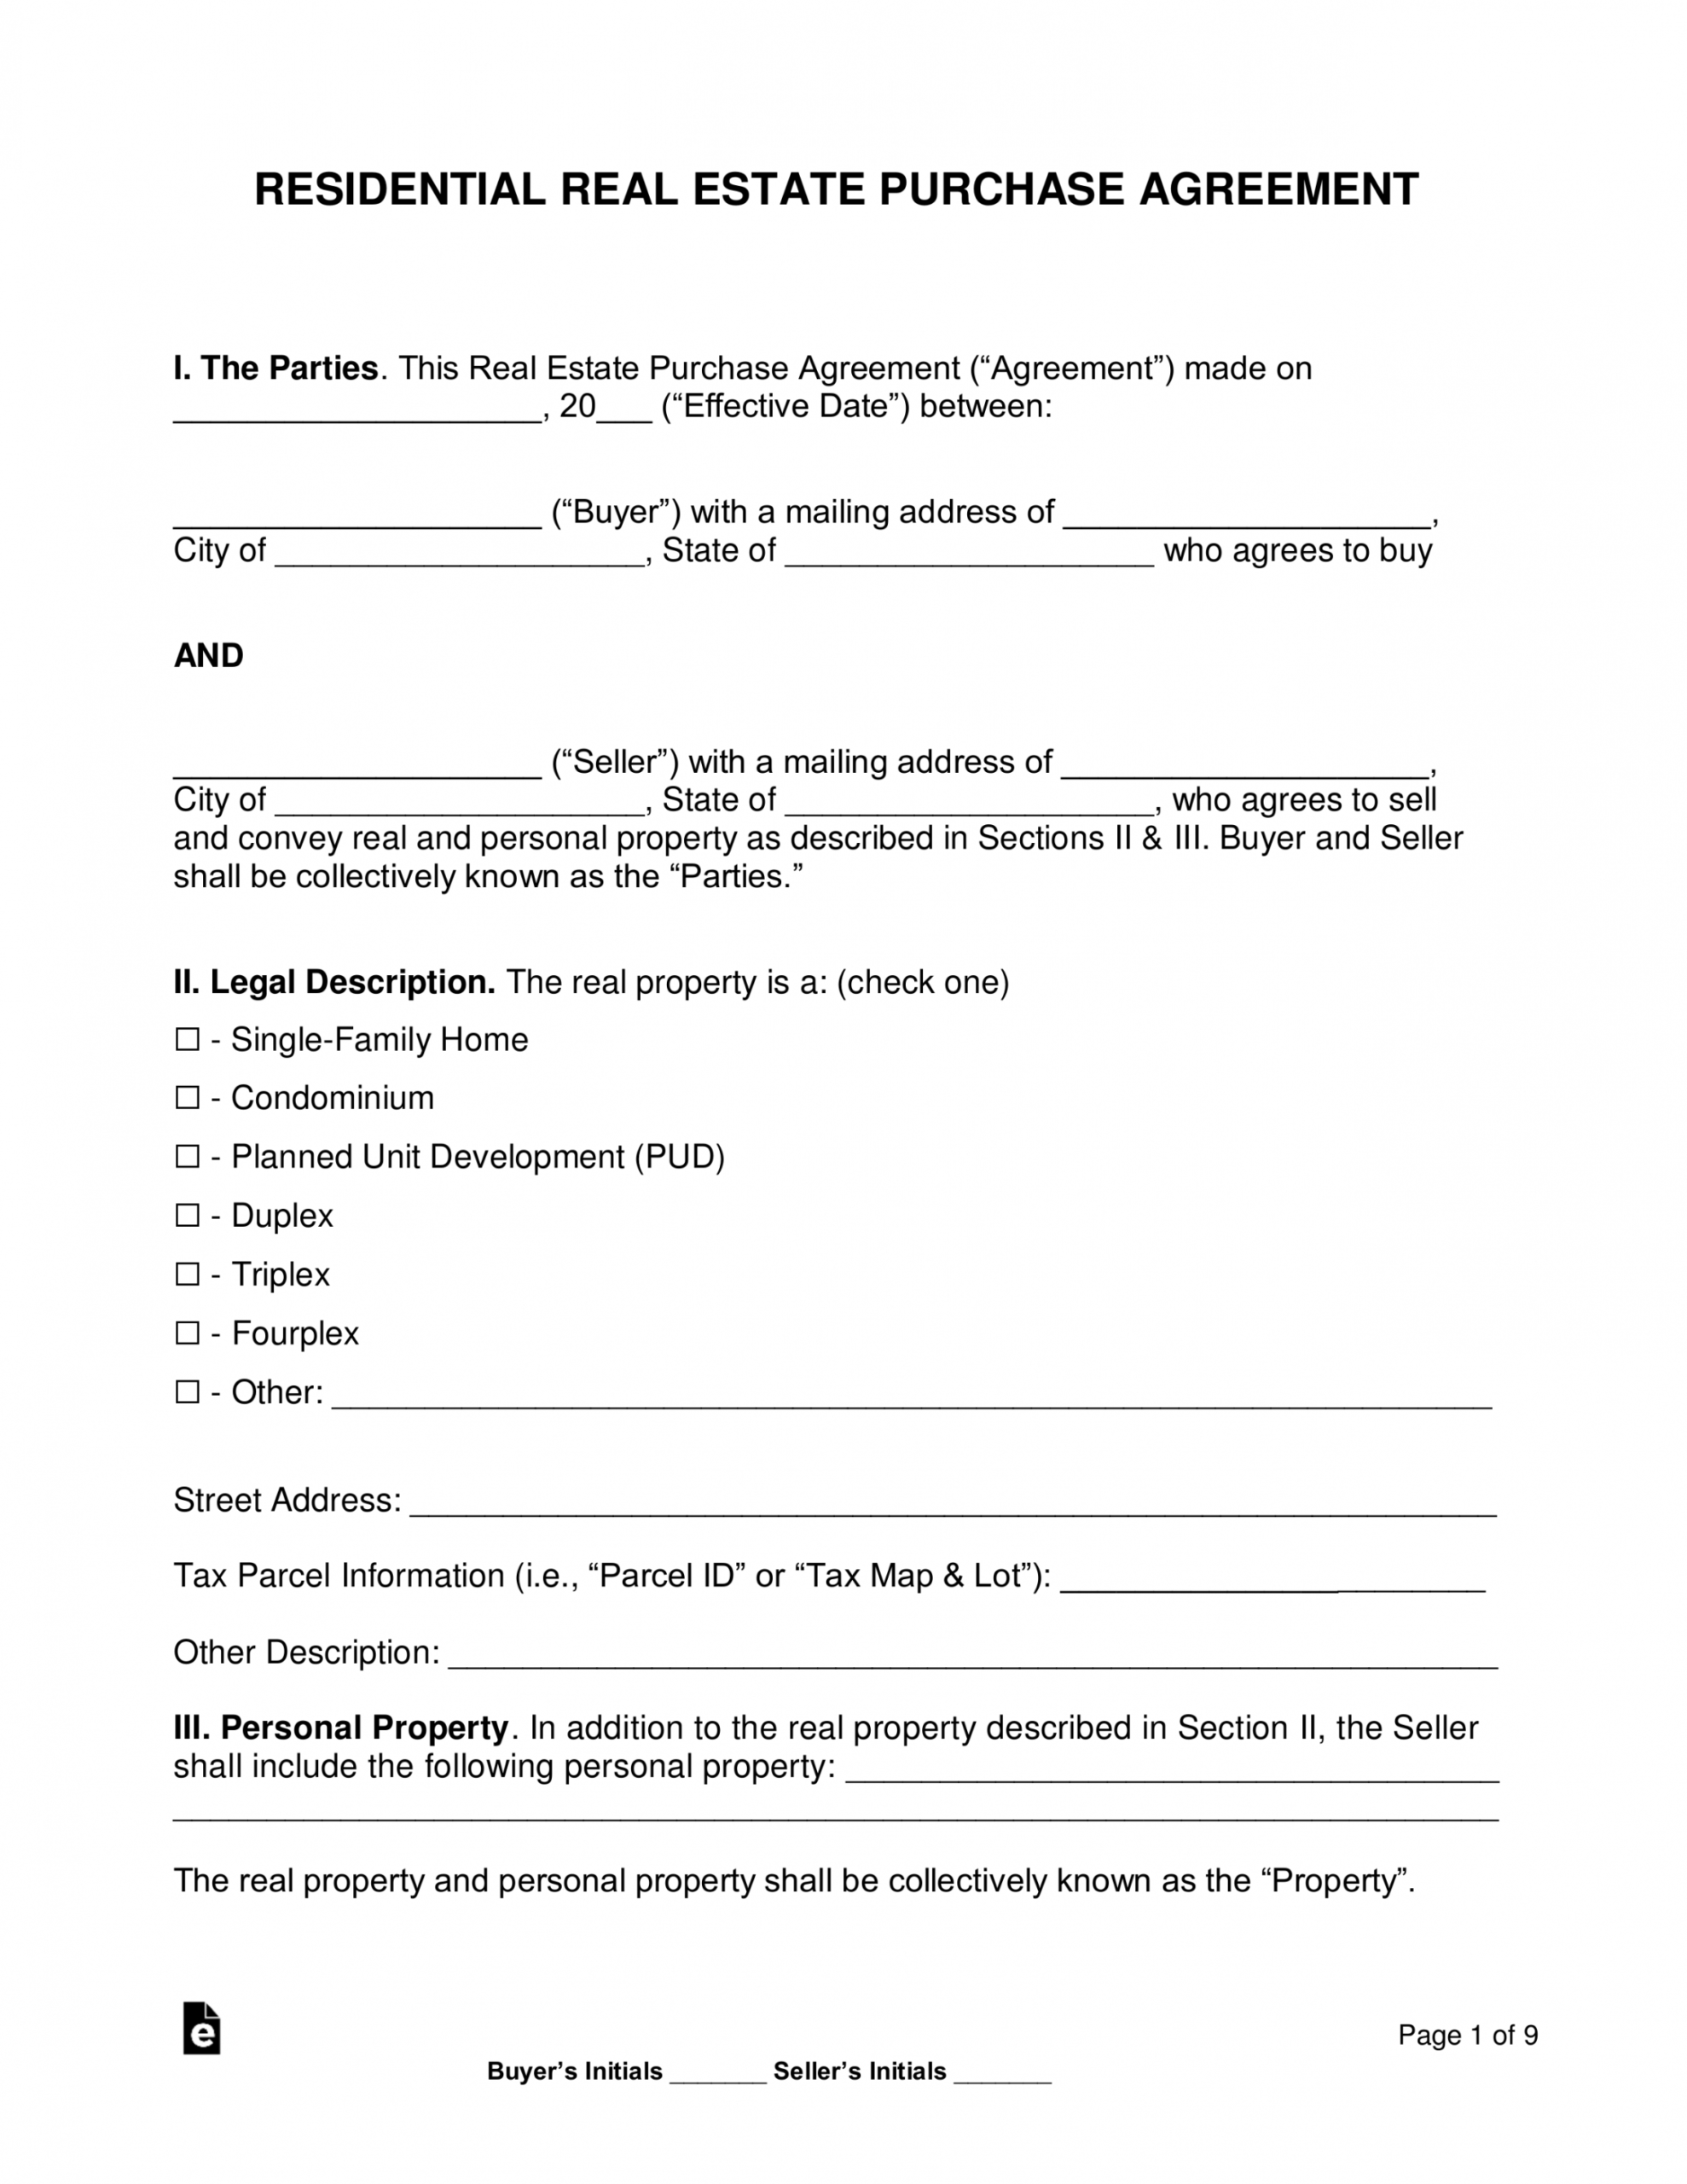 printable free residential real estate purchase agreements  word contract to buy a house template